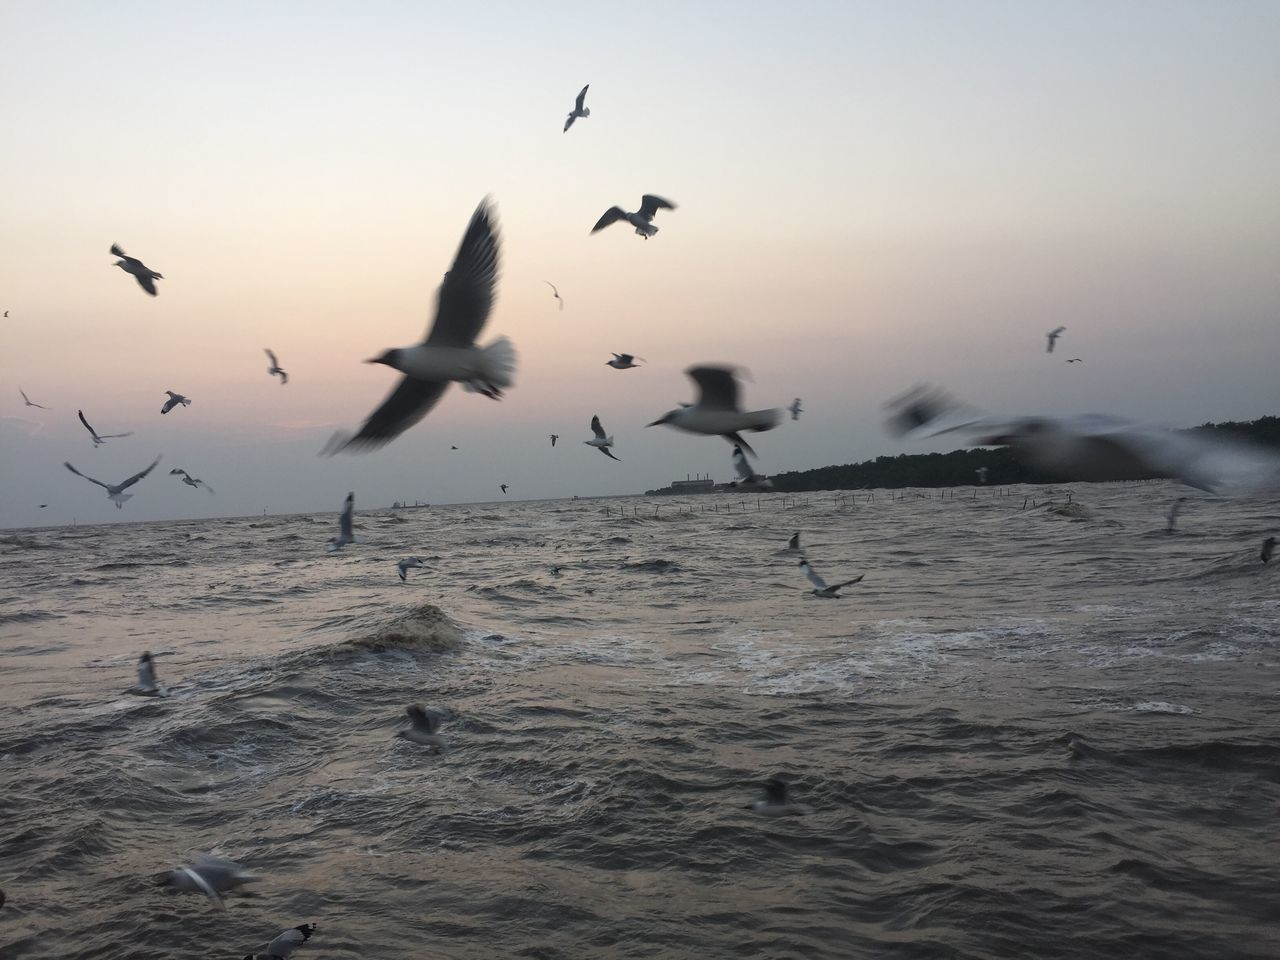 flying, animal themes, bird, animals in the wild, spread wings, animal wildlife, large group of animals, flock of birds, nature, mid-air, water, sea, migrating, motion, seagull, beauty in nature, no people, sunset, outdoors, togetherness, sky, day